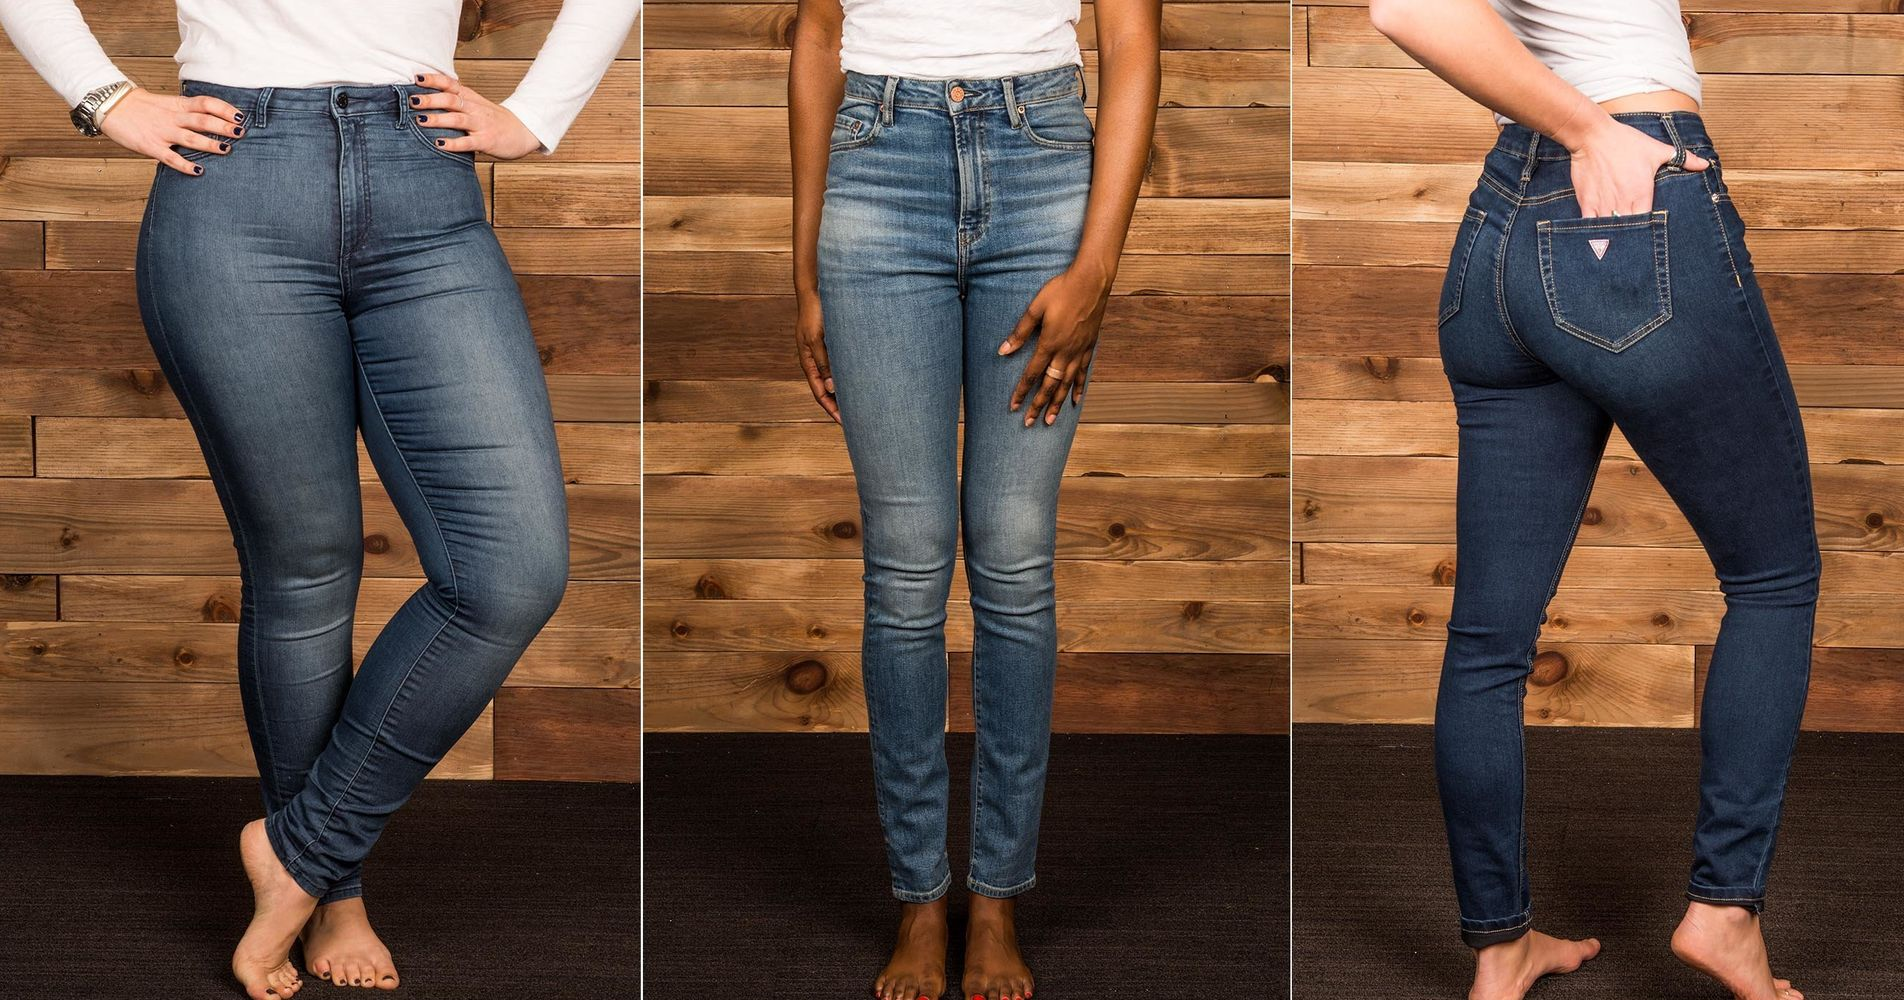 d6f60fe9d9bca 11 Women Get Refreshingly Real About Finding Jeans That Fit Their Bodies